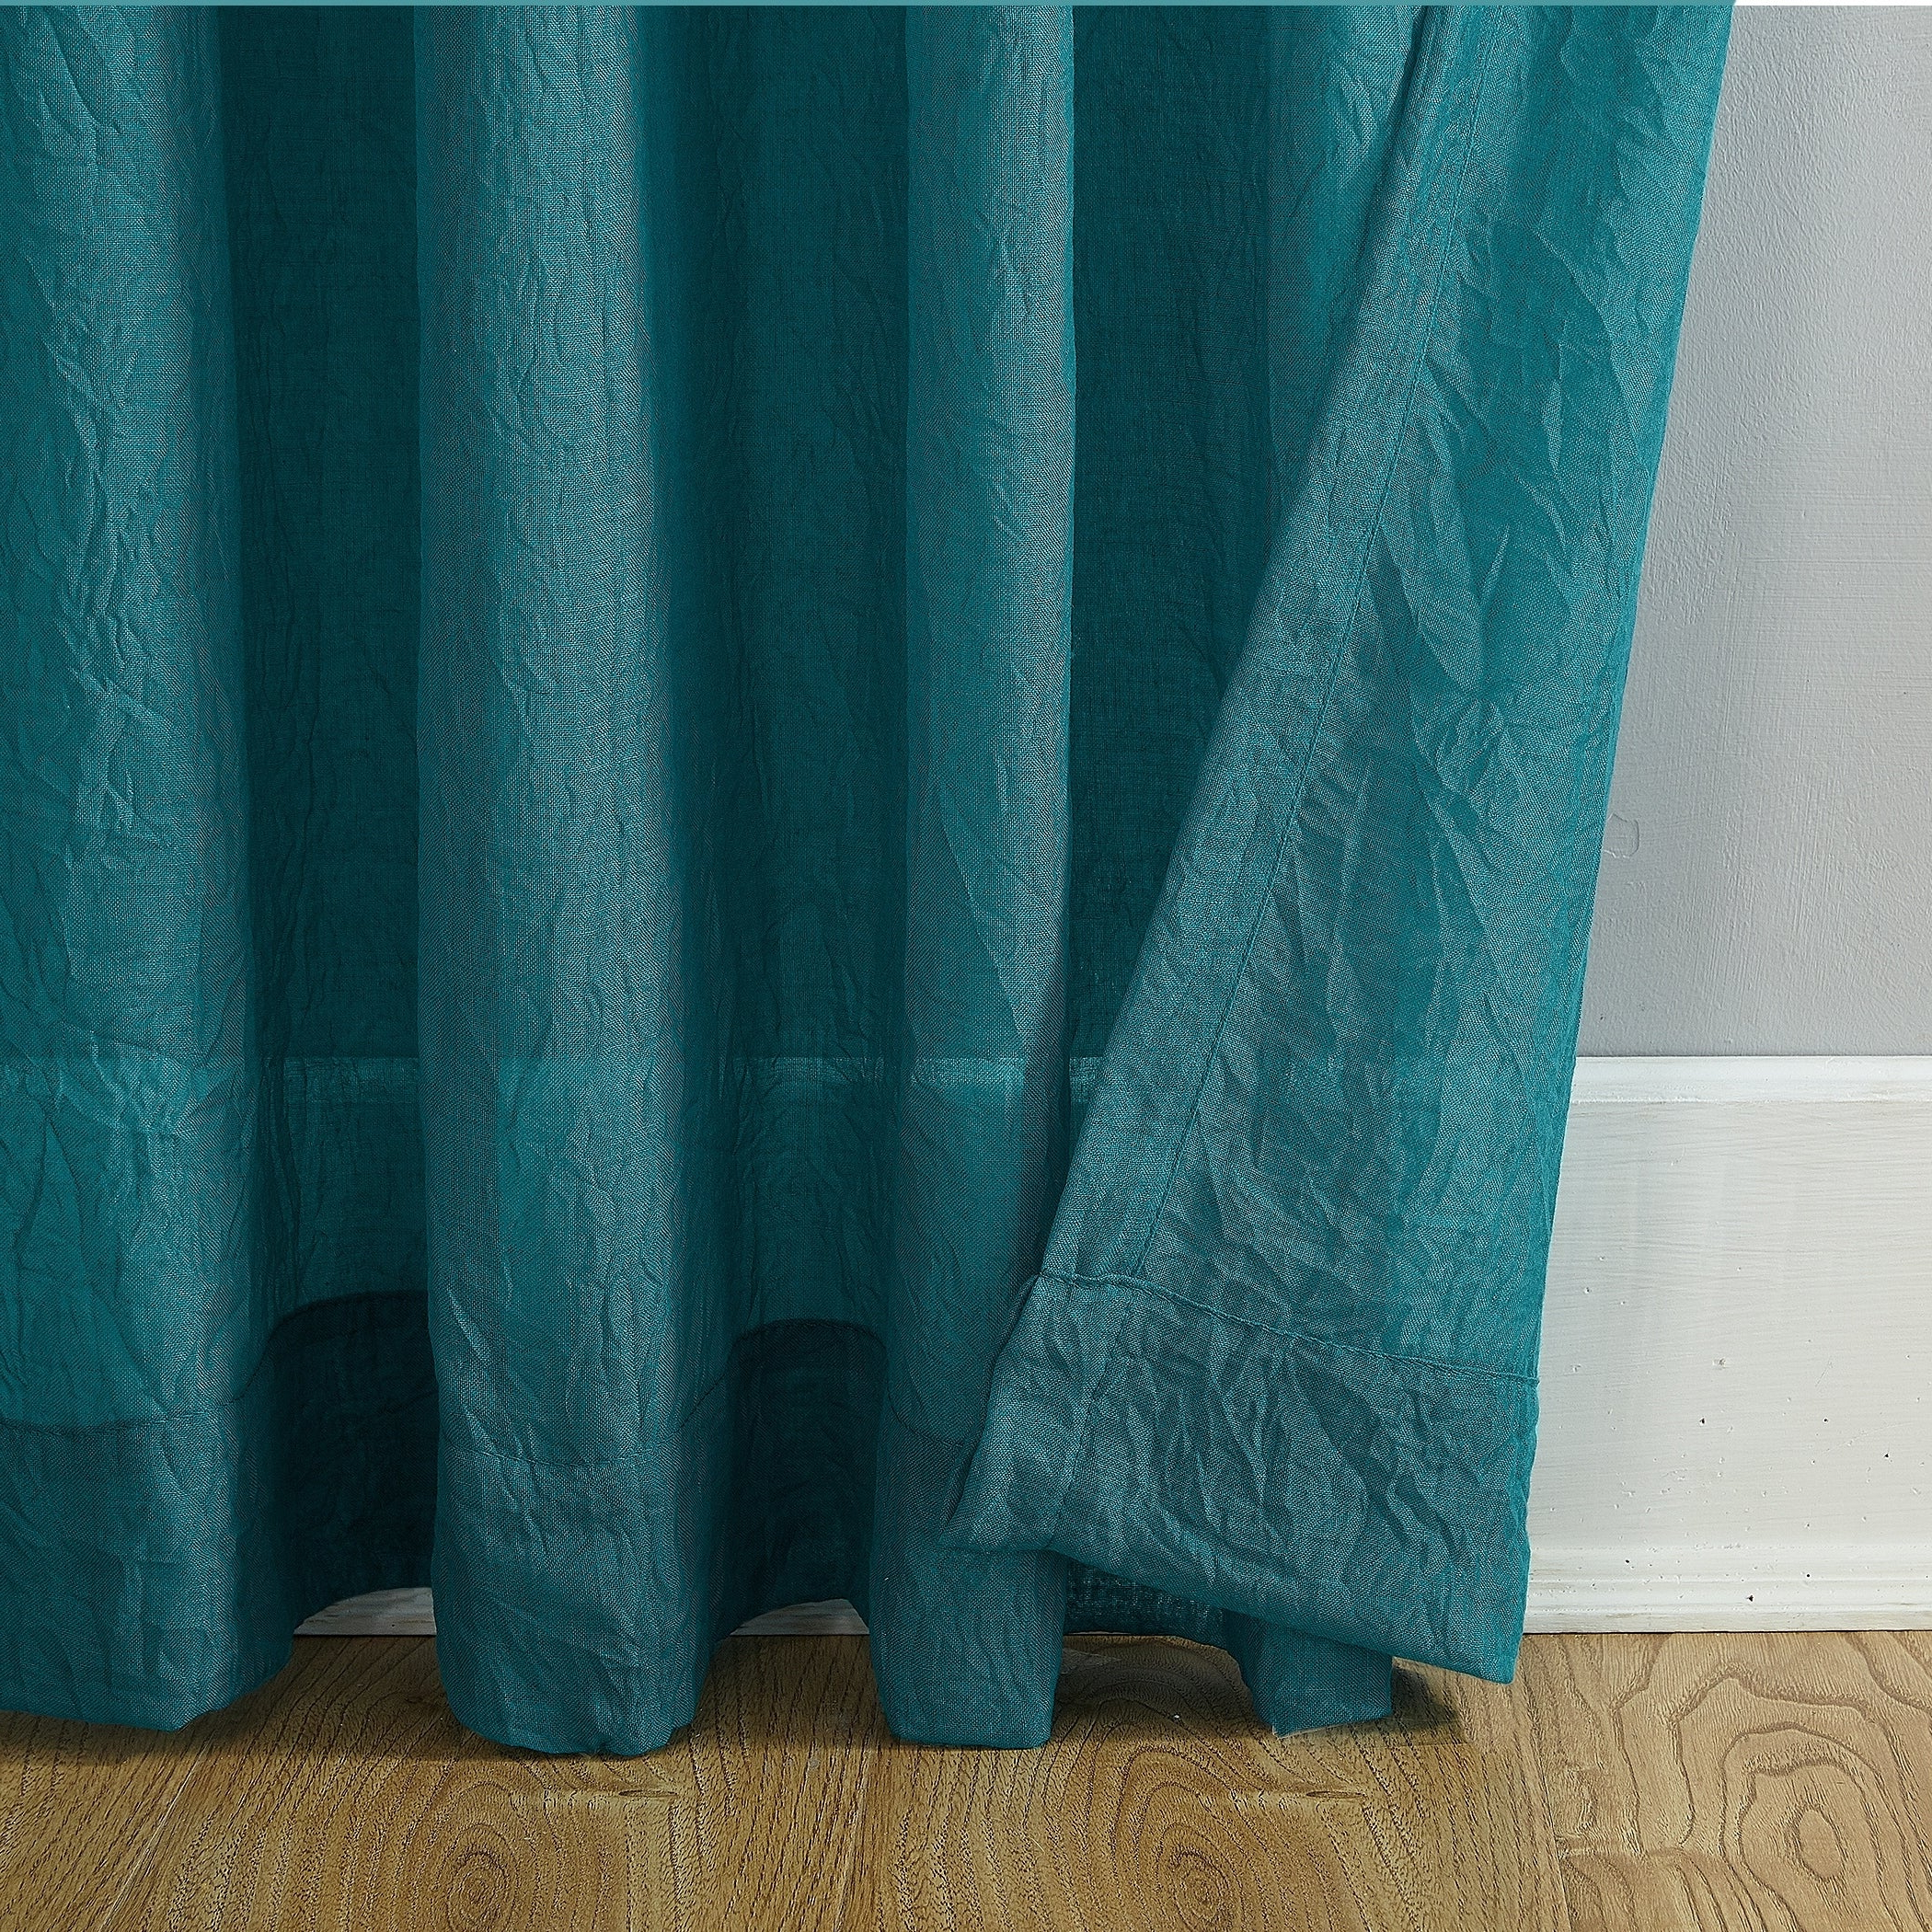 Most Popular No. 918 Ladonna Rod Pocket Solid Semi Sheer Window Curtain Panel Pertaining To Ladonna Rod Pocket Solid Semi Sheer Window Curtain Panels (Gallery 16 of 20)